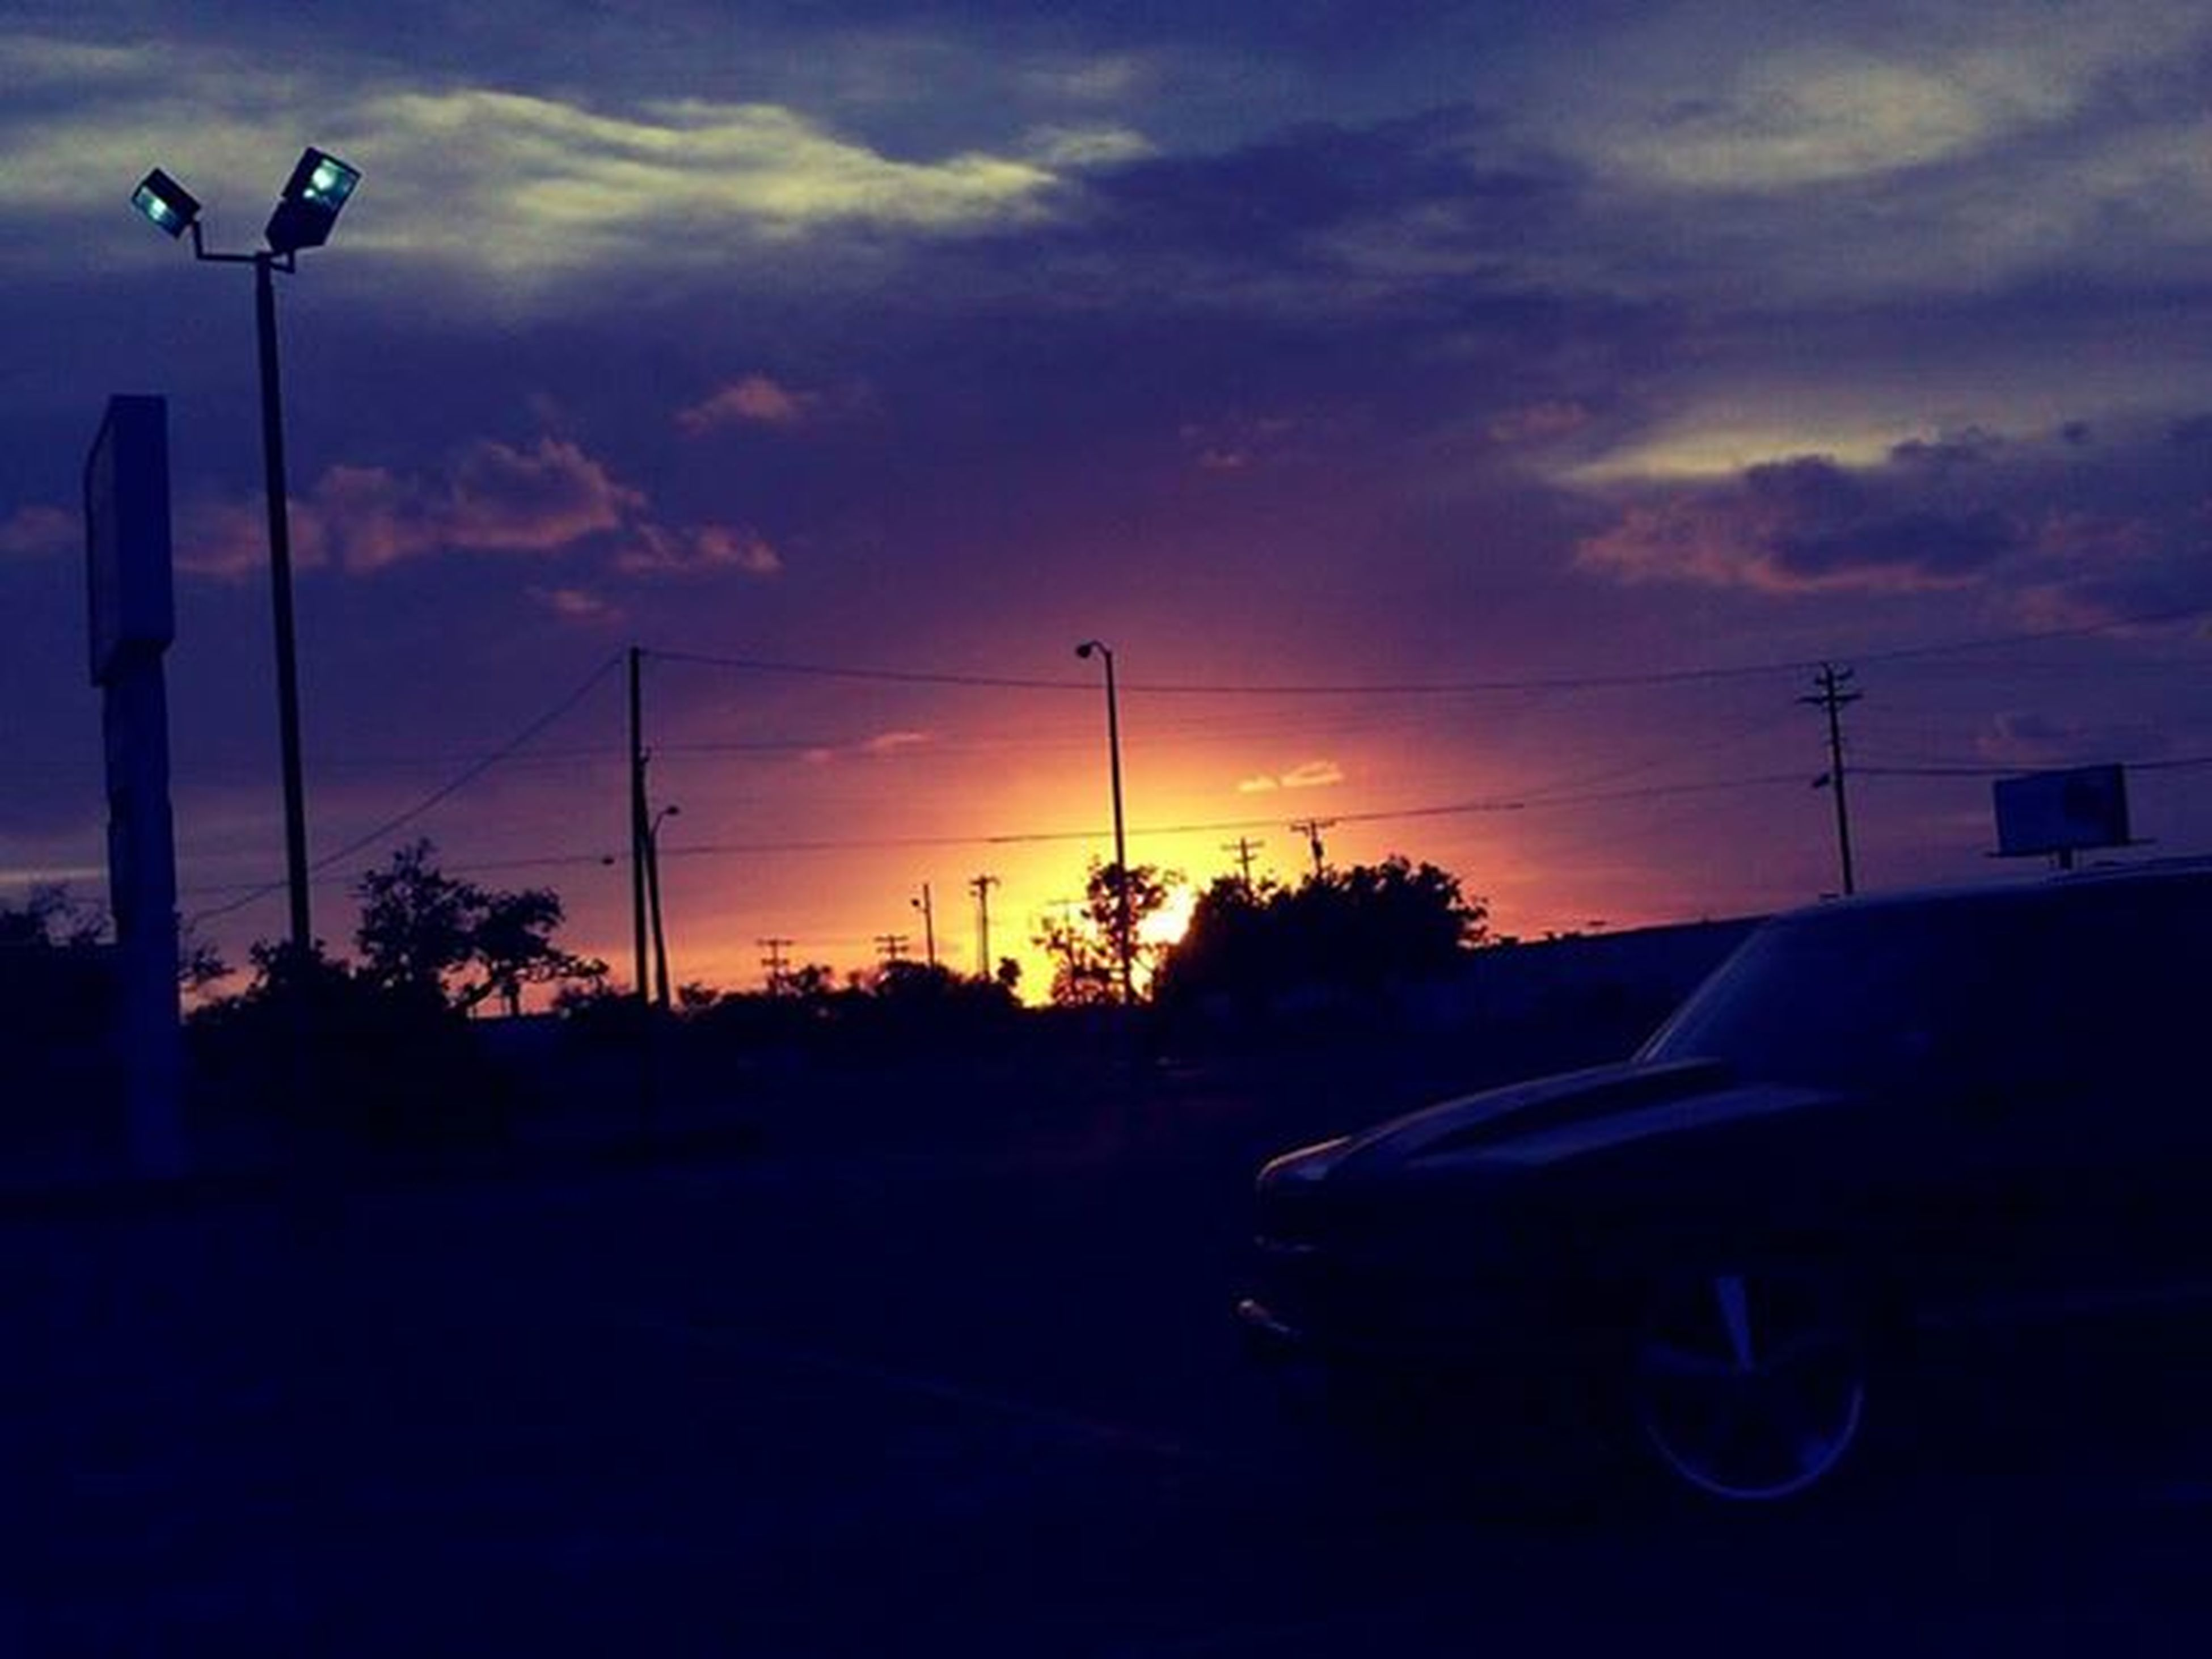 sunset, sky, silhouette, street light, orange color, cloud - sky, transportation, beauty in nature, nature, scenics, tranquility, cloud, car, dusk, lighting equipment, tree, tranquil scene, no people, land vehicle, outdoors